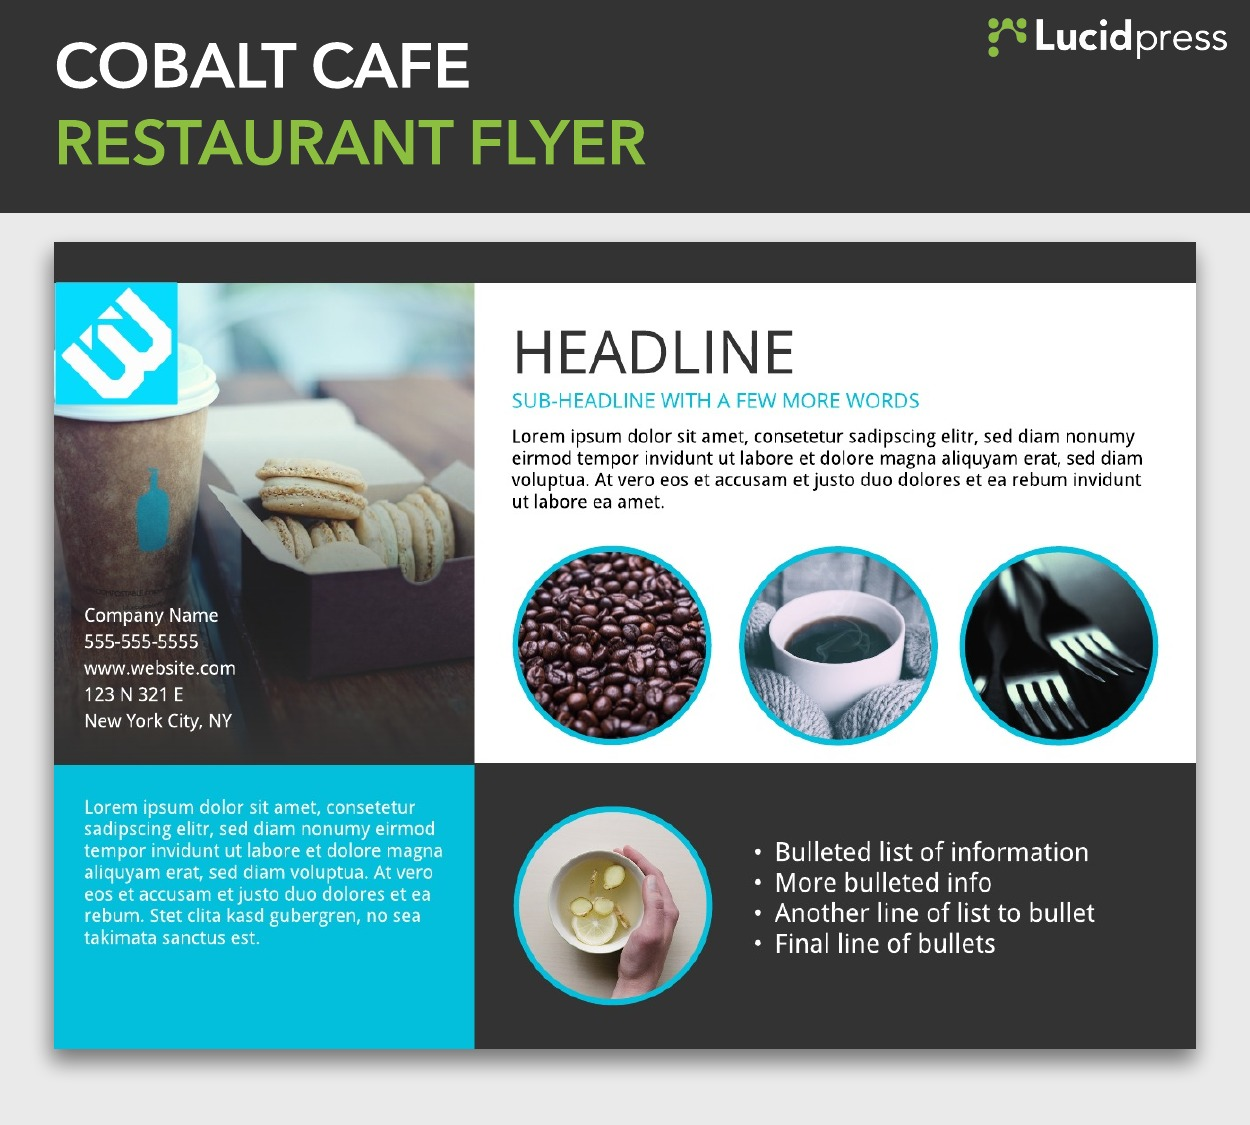 17 flyer layout design ideas for your inspiration4 cobalt cafe restaurant flyer